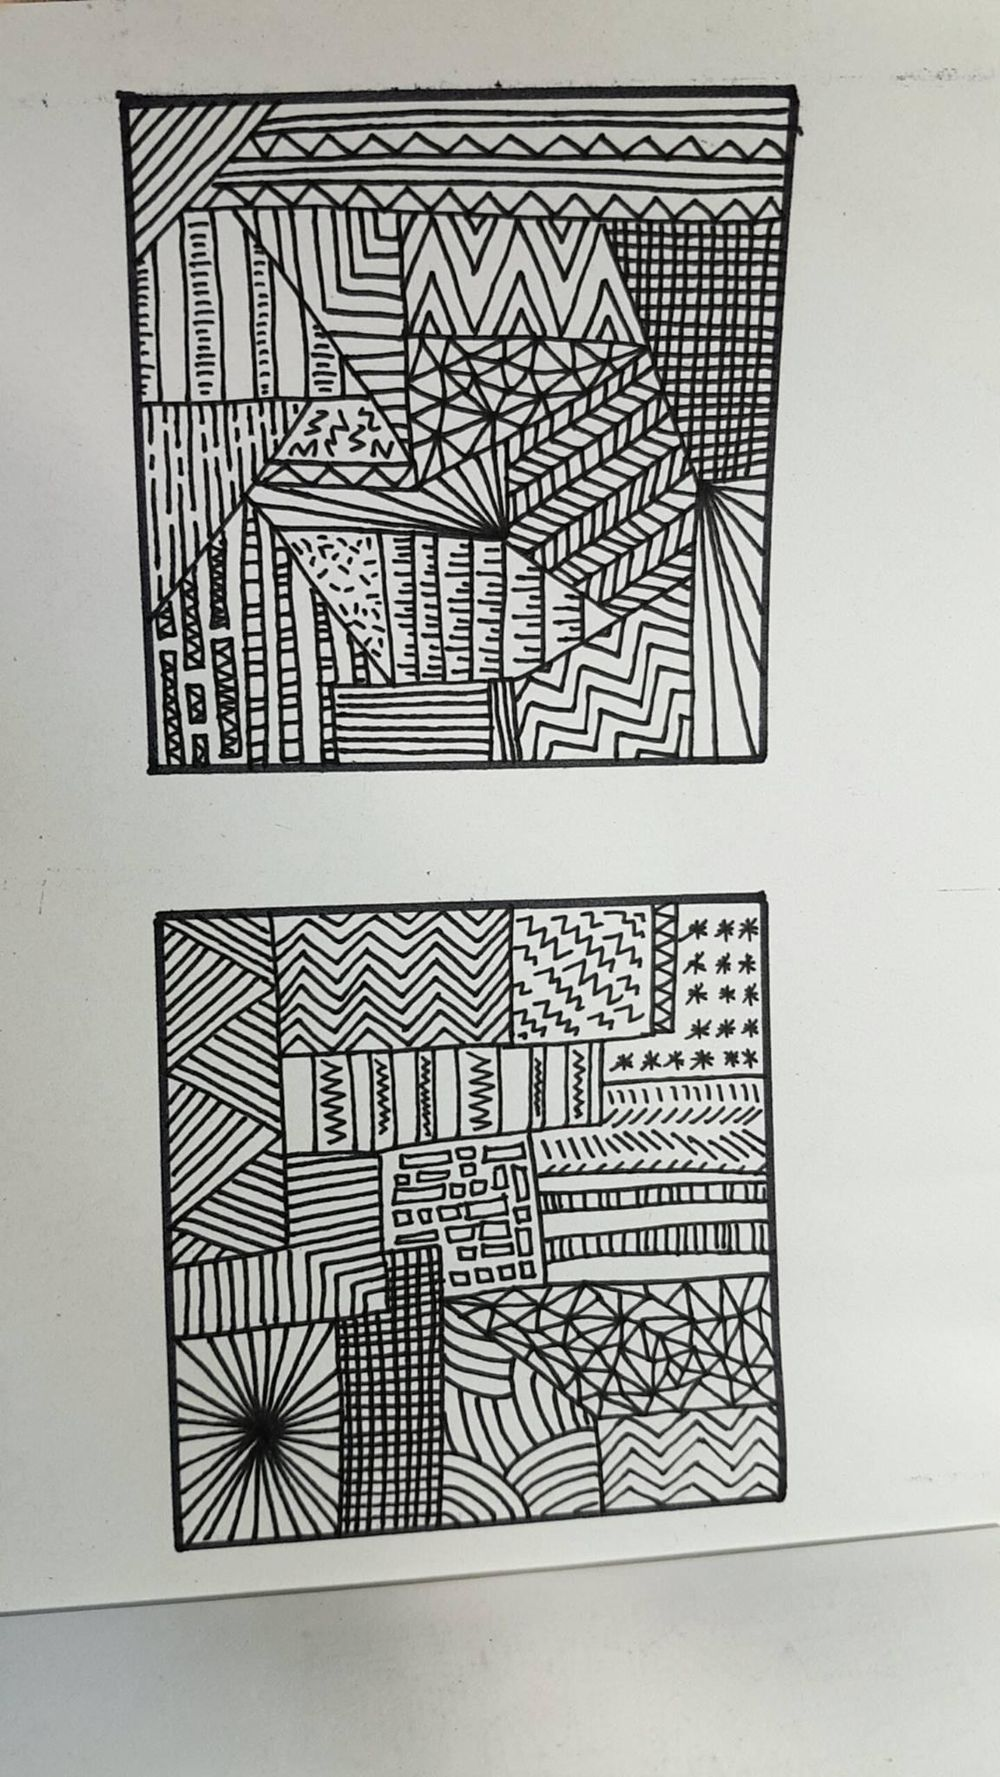 Doodling experiments - image 2 - student project